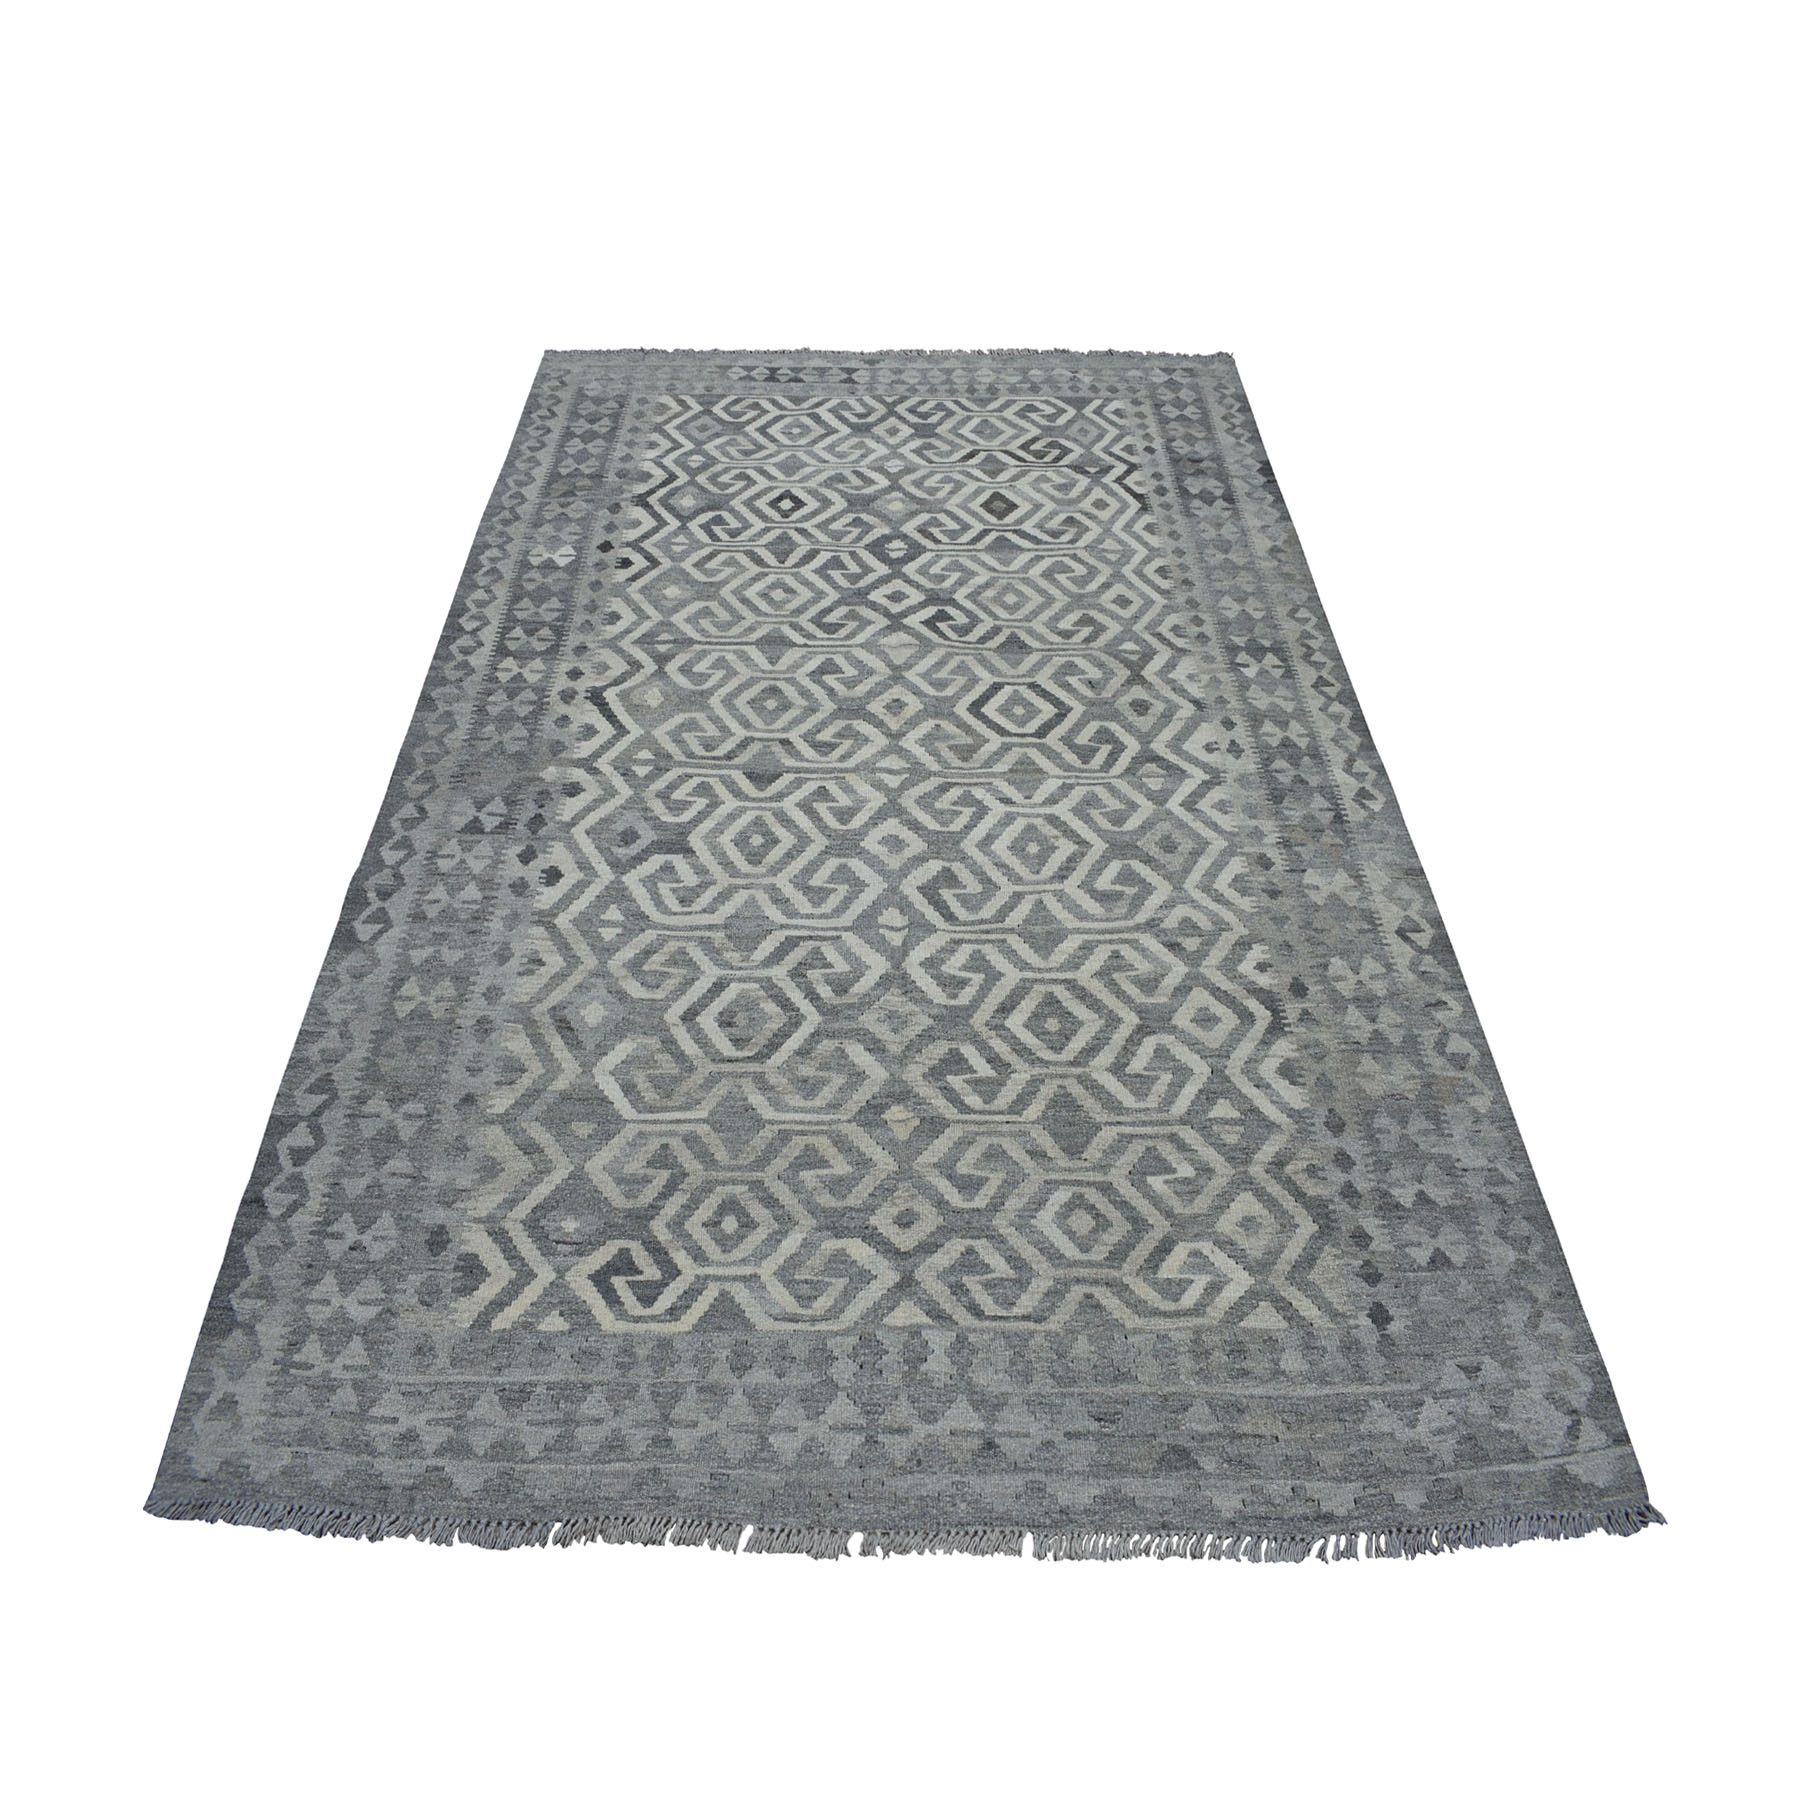 """5'10""""X8' Undyed Natural Wool Afghan Kilim Reversible Hand Woven Oriental Rug moaecde7"""